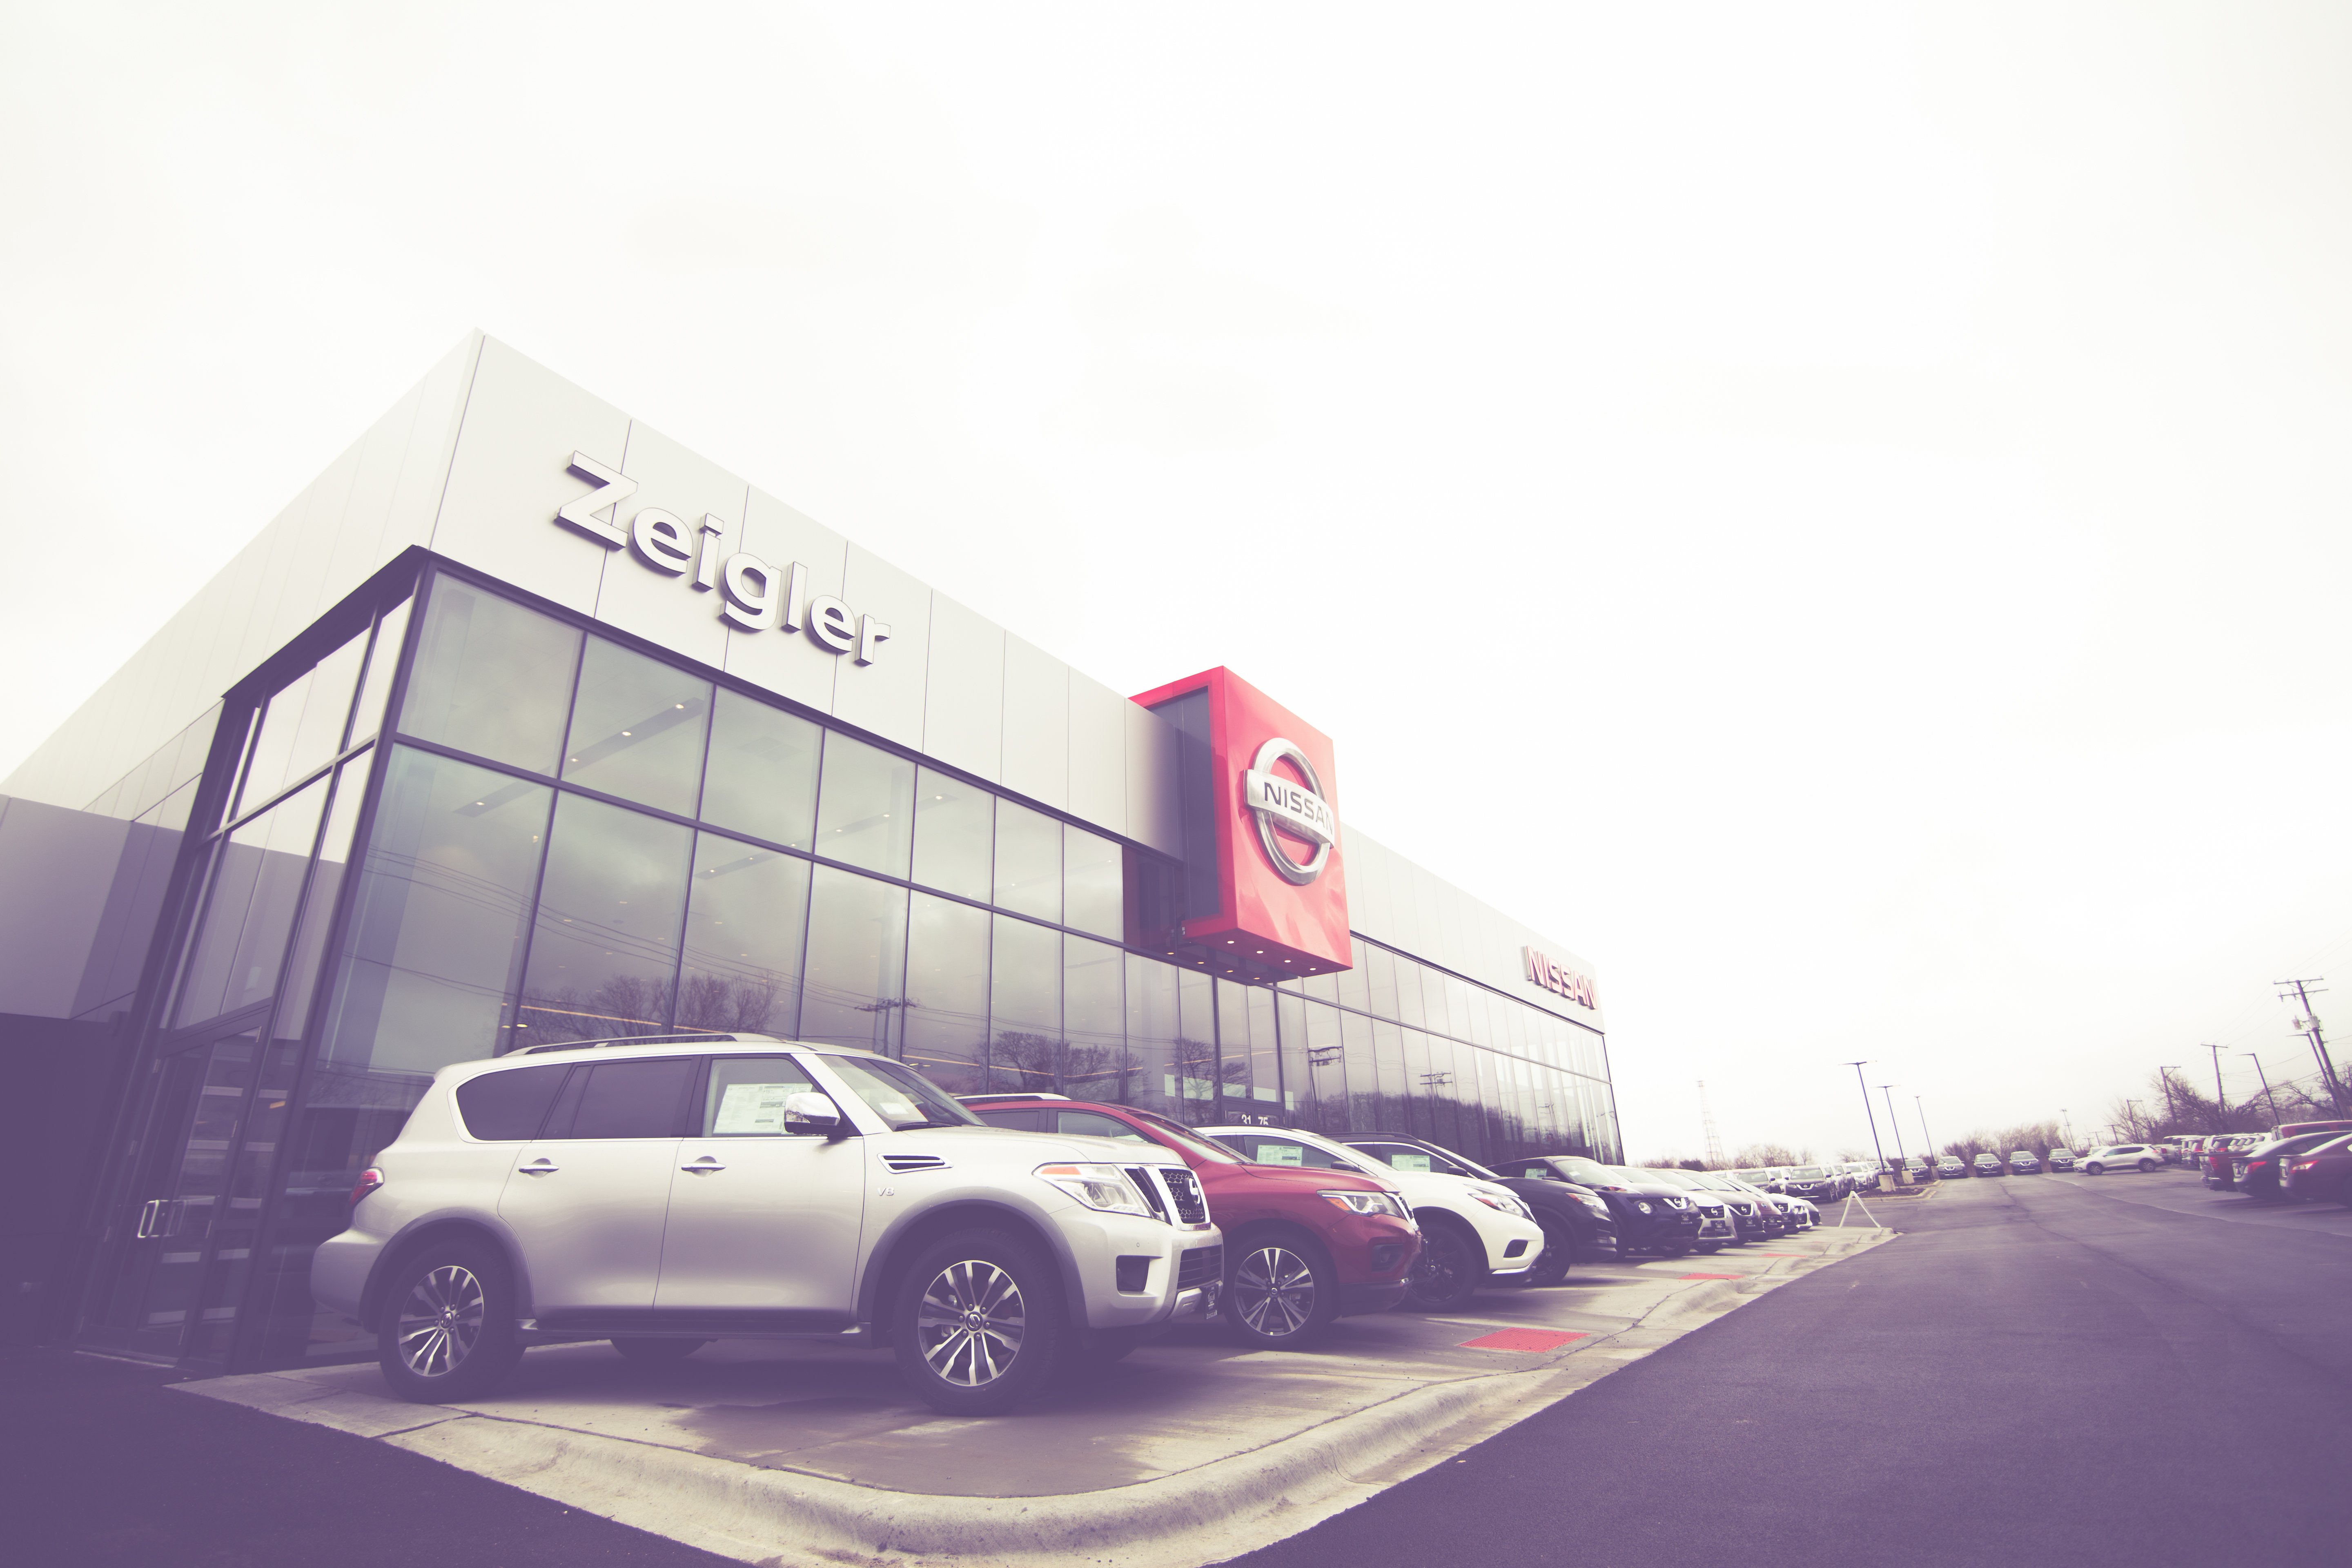 Nissan 2 0 build good for customers and business at Zeigler